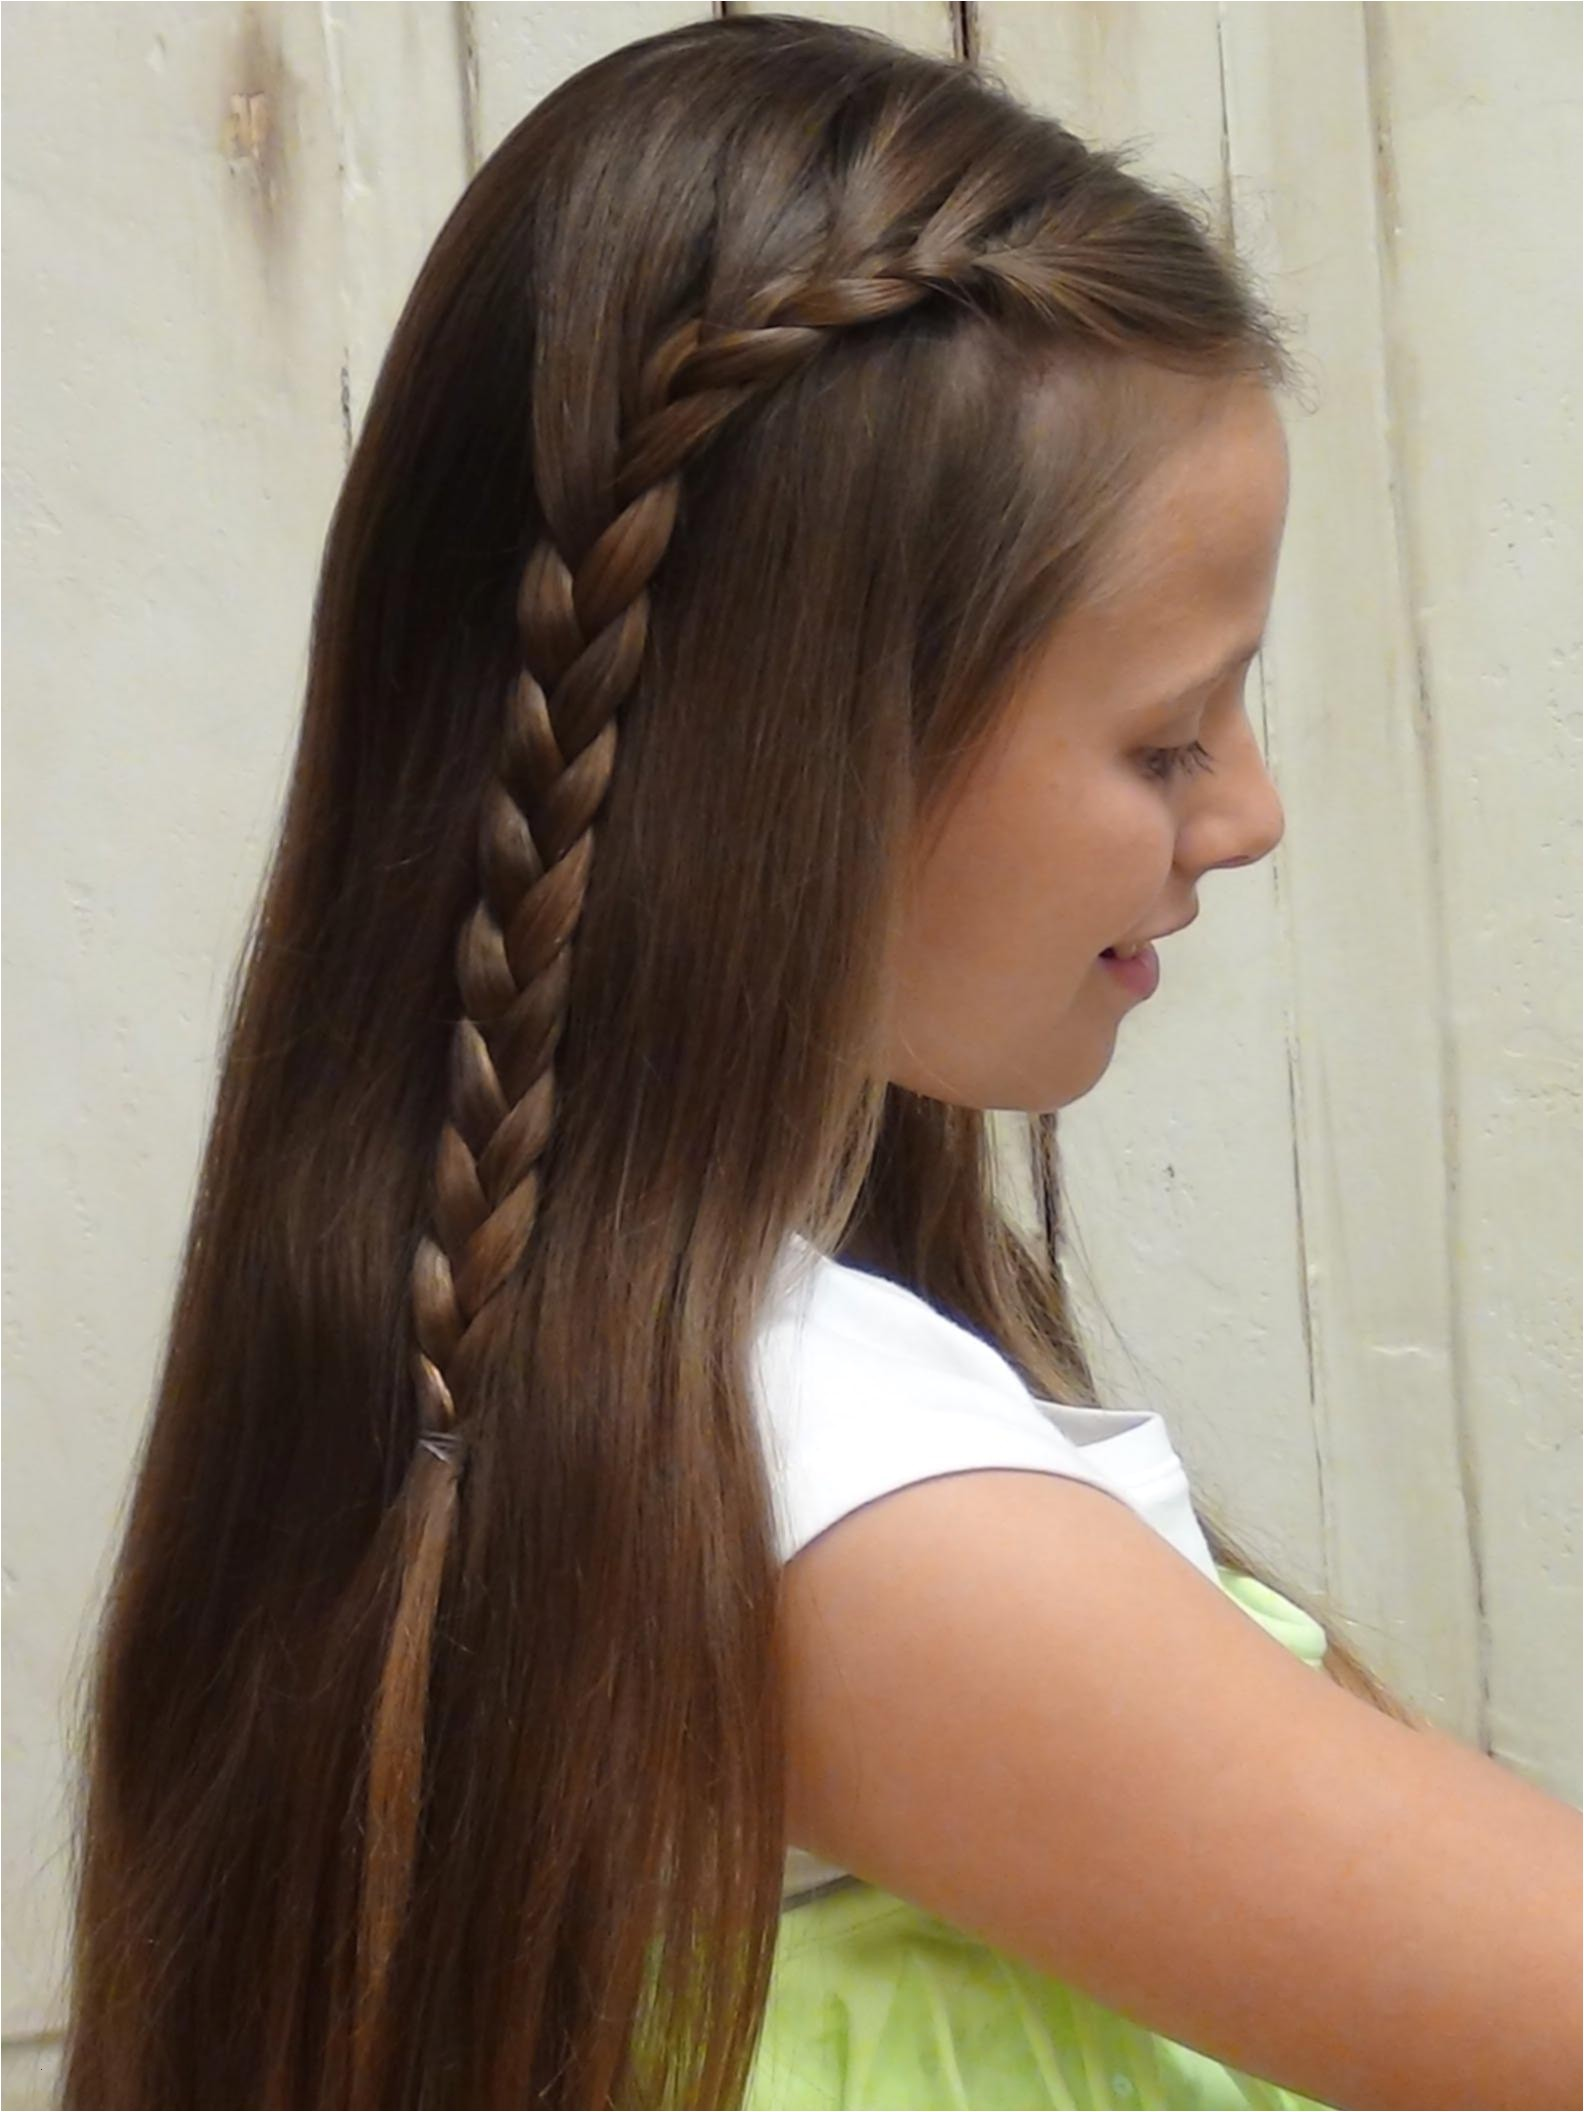 Quick Easy Cute Hairstyles for Short Hair Inspirational Best Braid Hairstyles for Short Hair Fashionableprofessionals